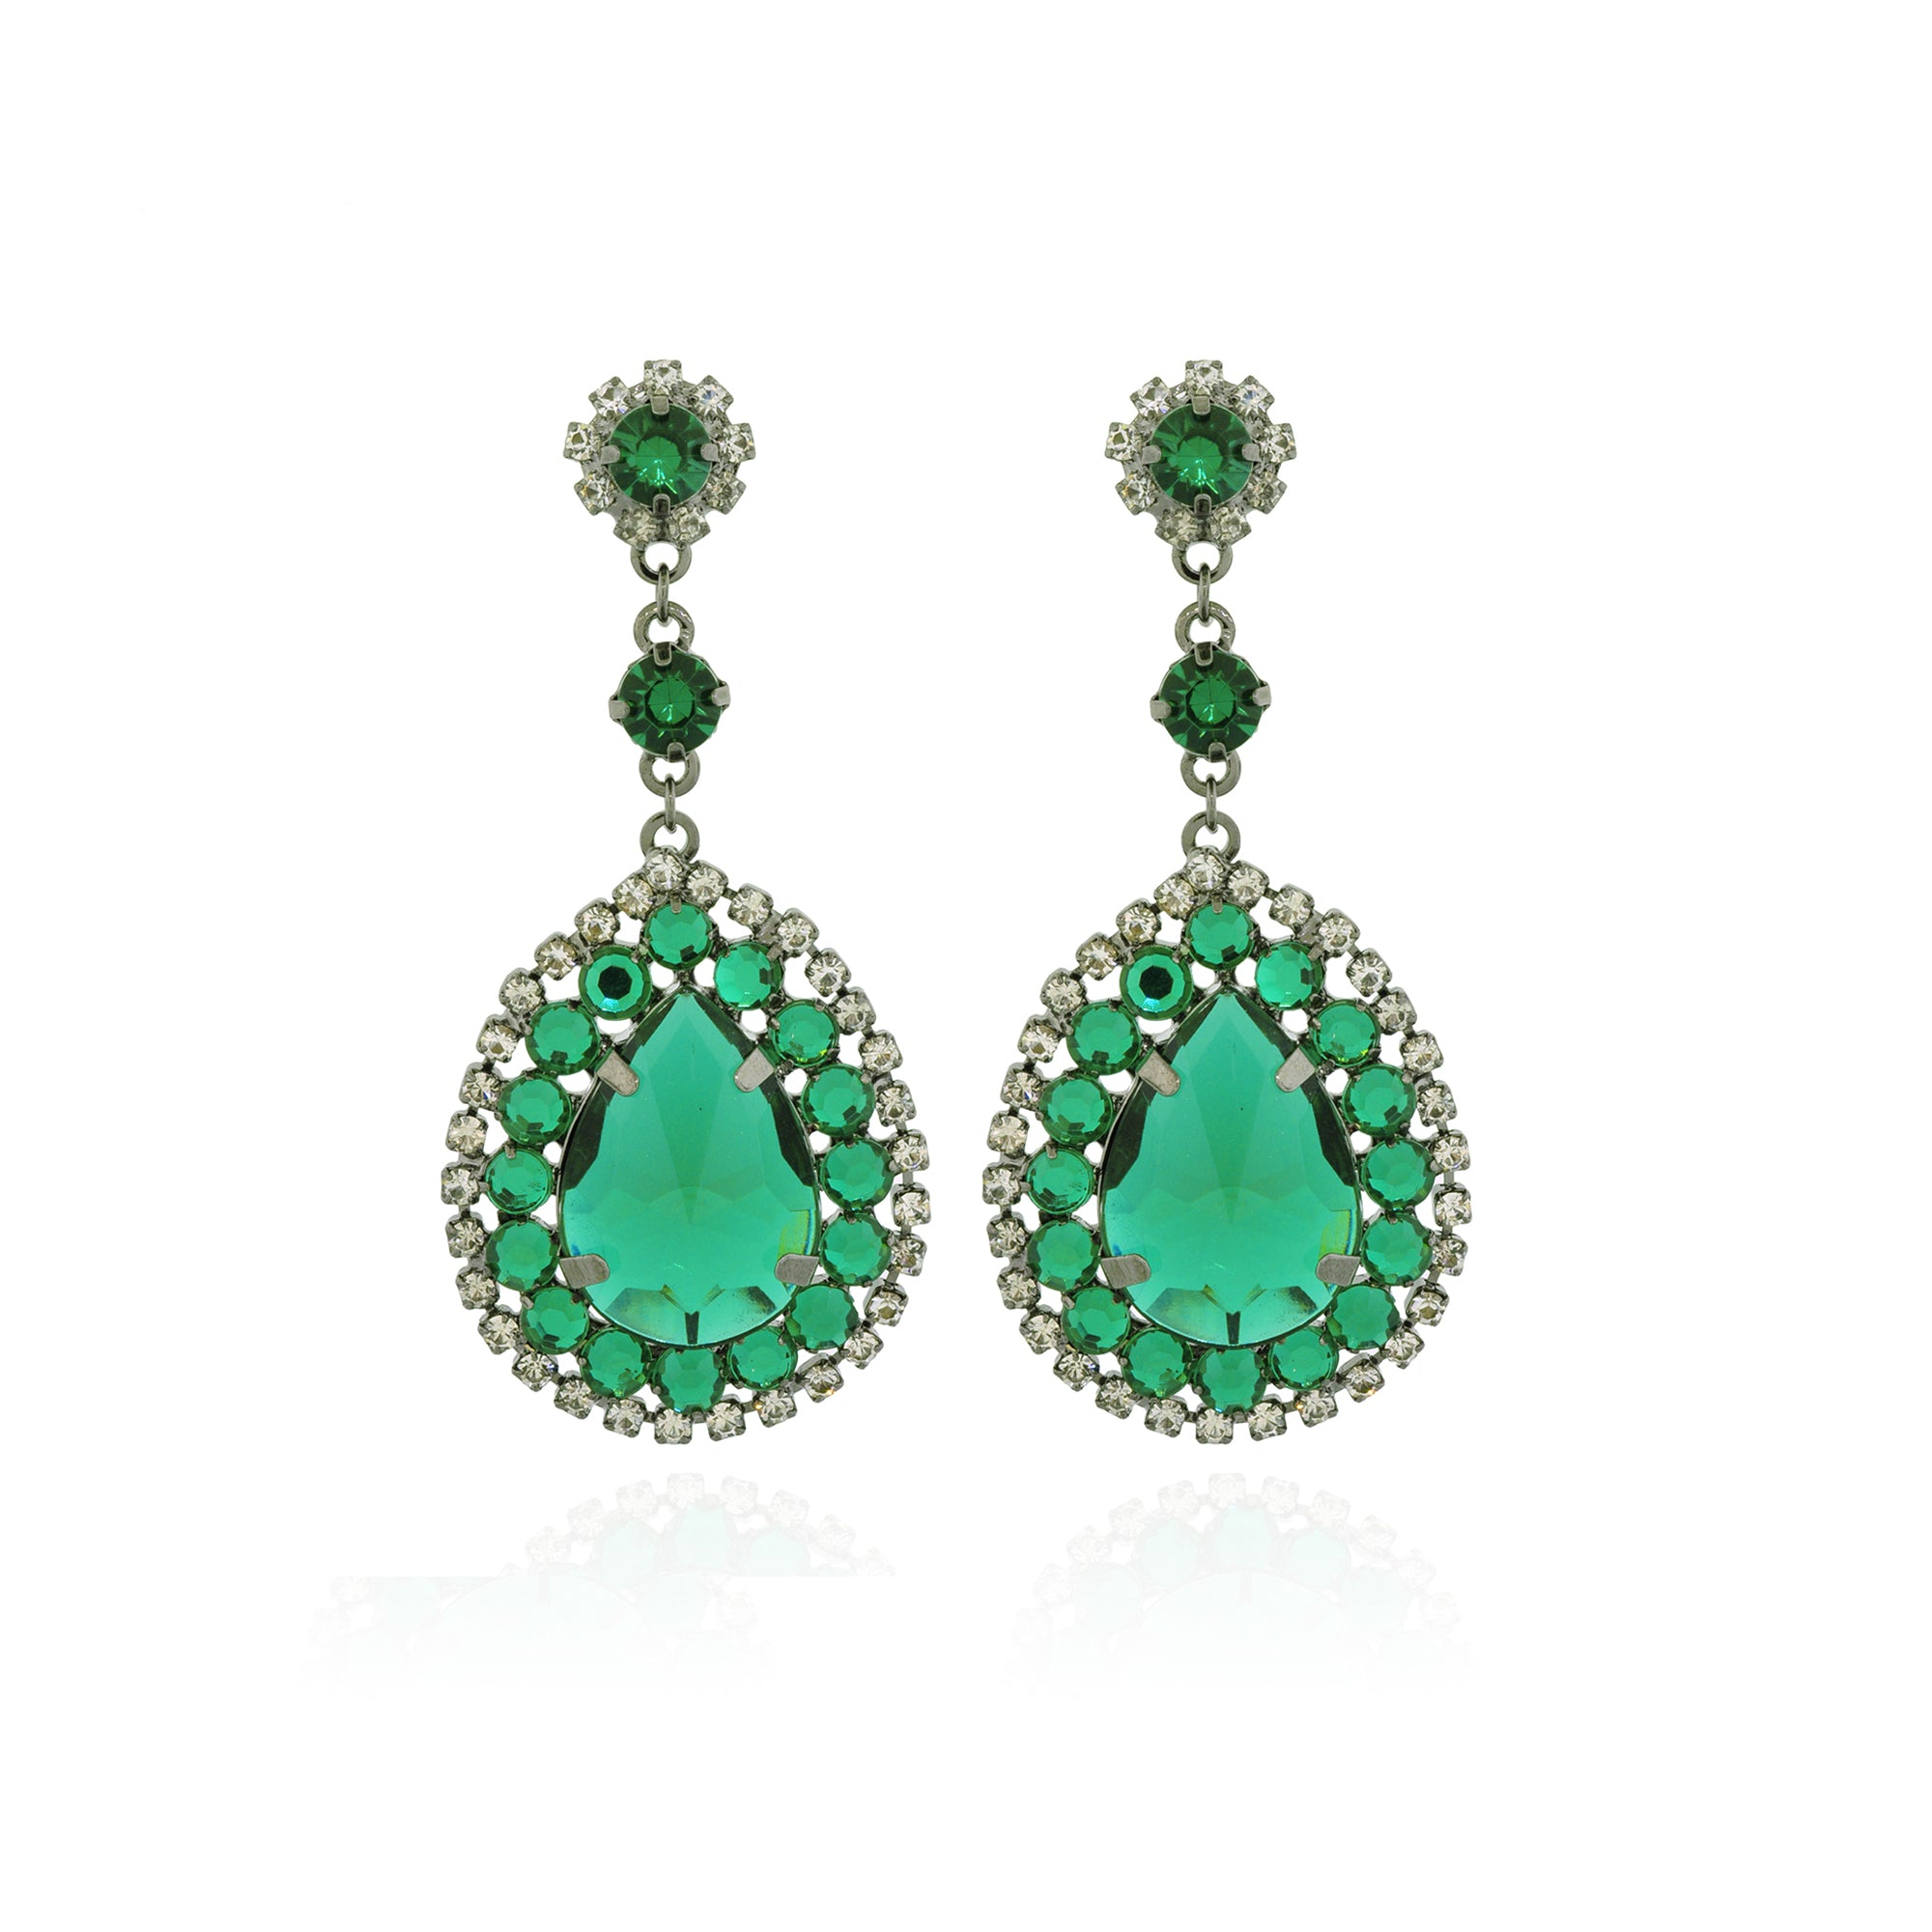 geo fine uk drop stone la emerald ebng designer jewellery diamond by barragan earrings slice london